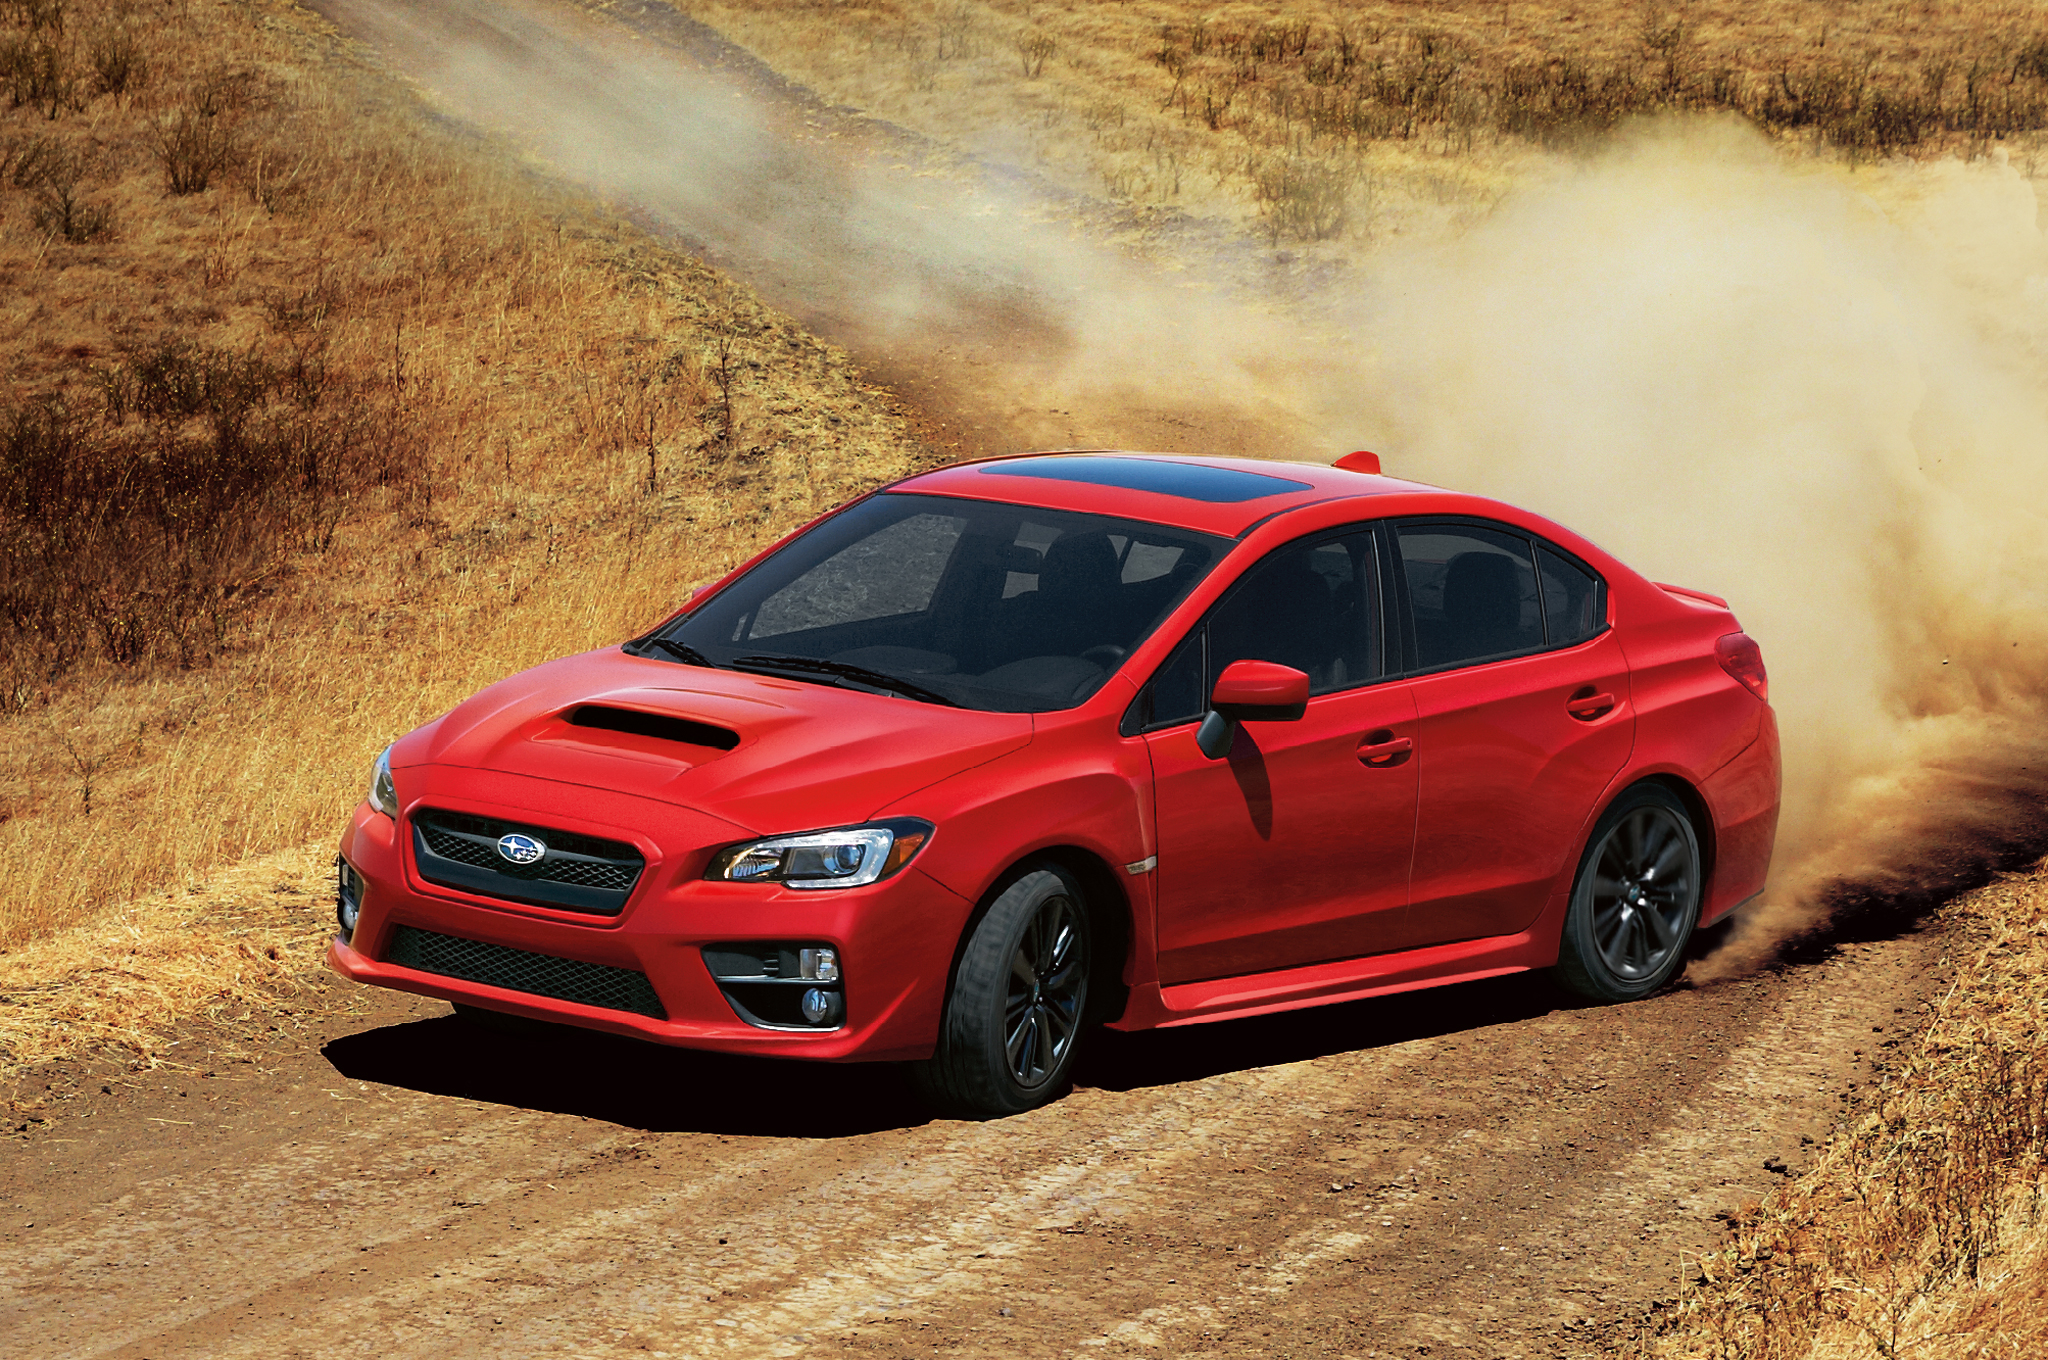 Watch the 2015 Subaru WRX in Some Rally-Style Action